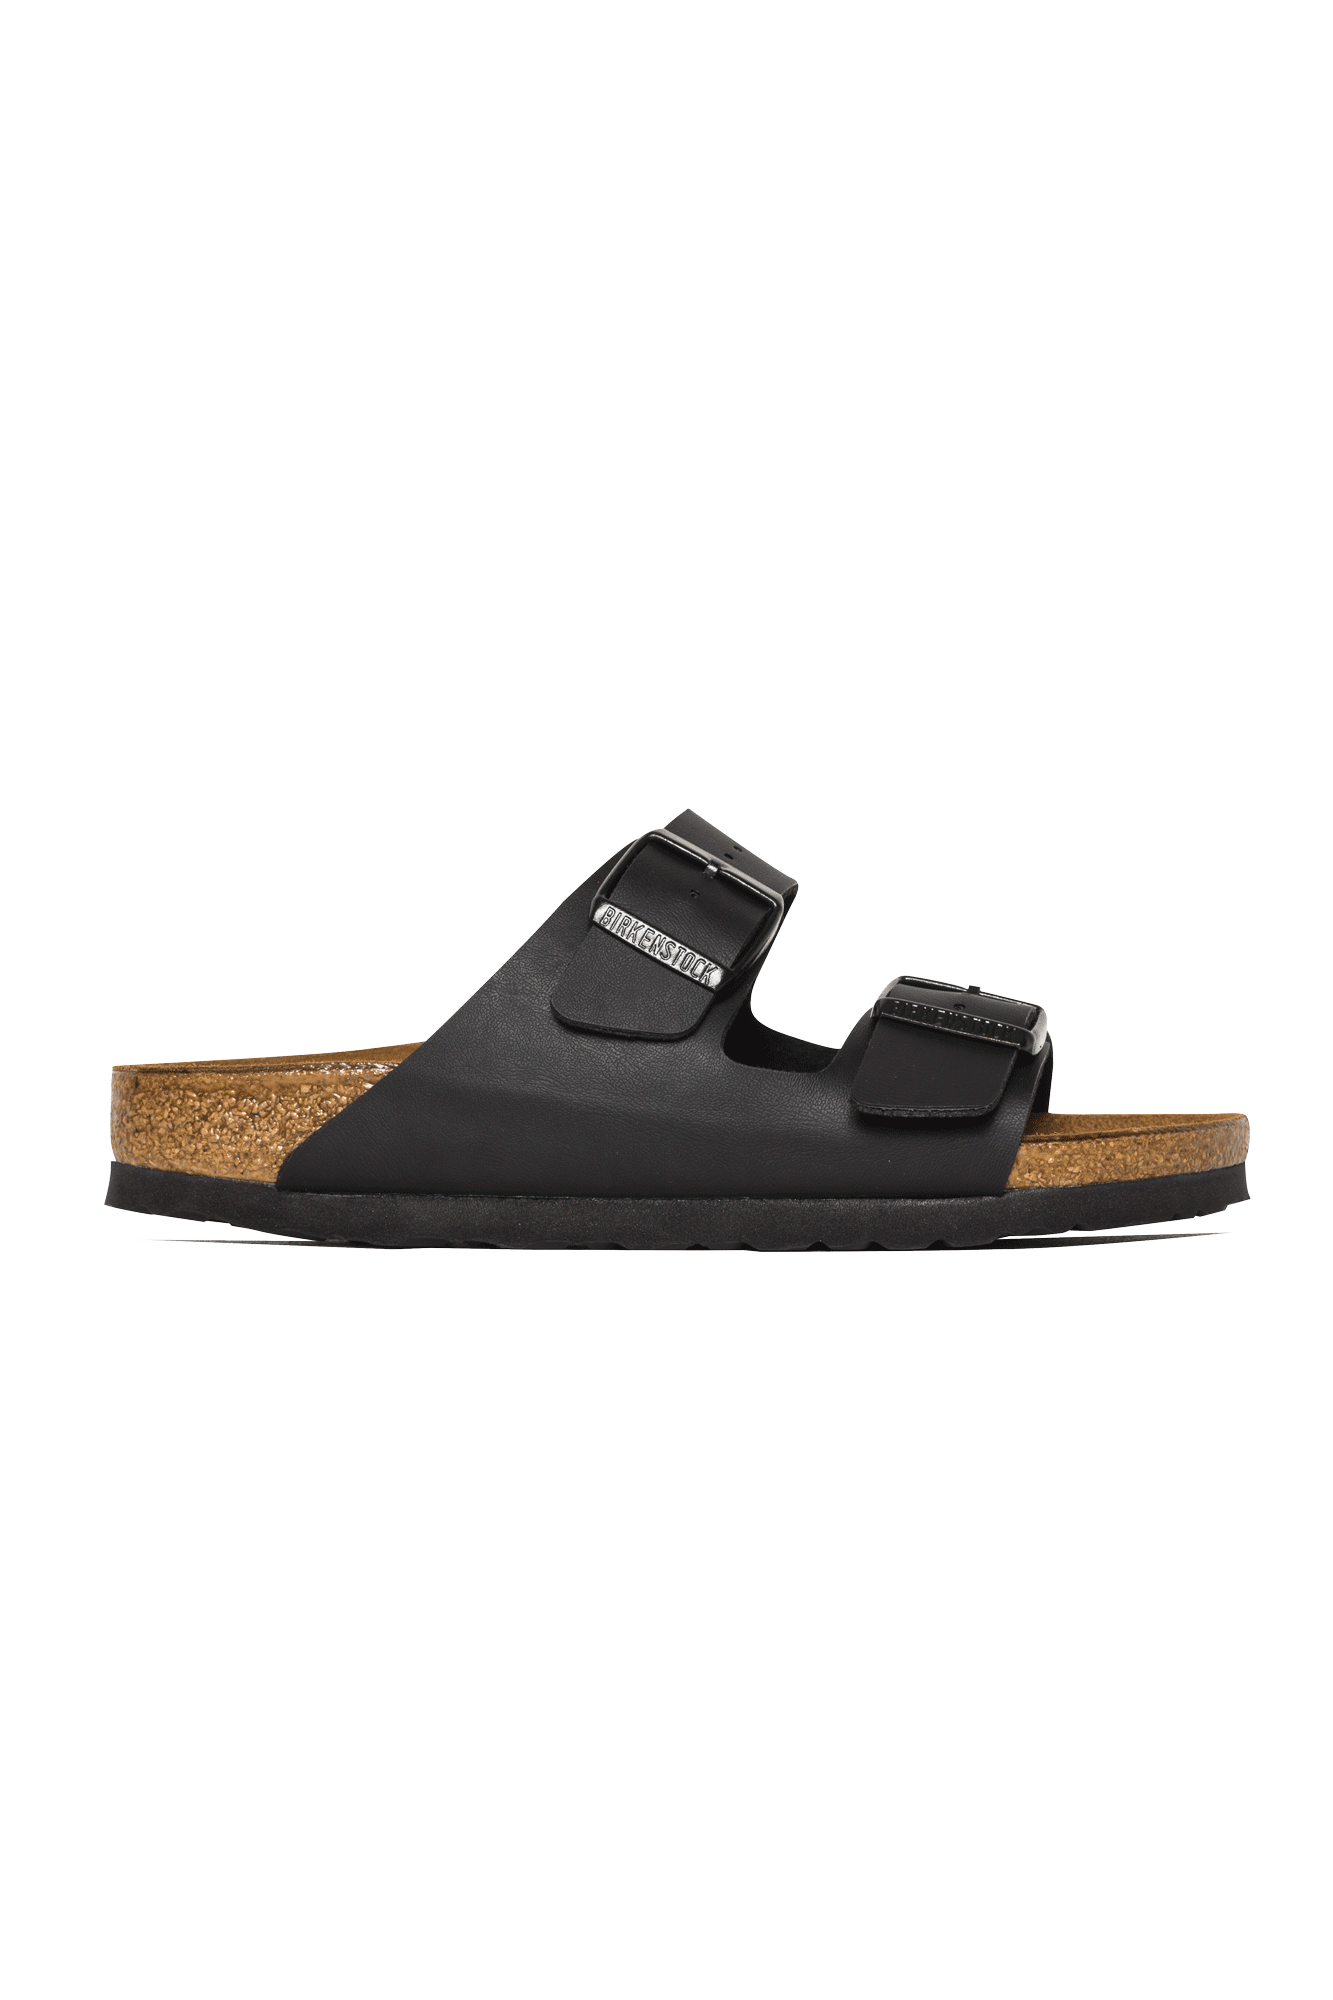 Birkenstock Sandali & Ciabatte Arizona Nero Nero - One Block Down